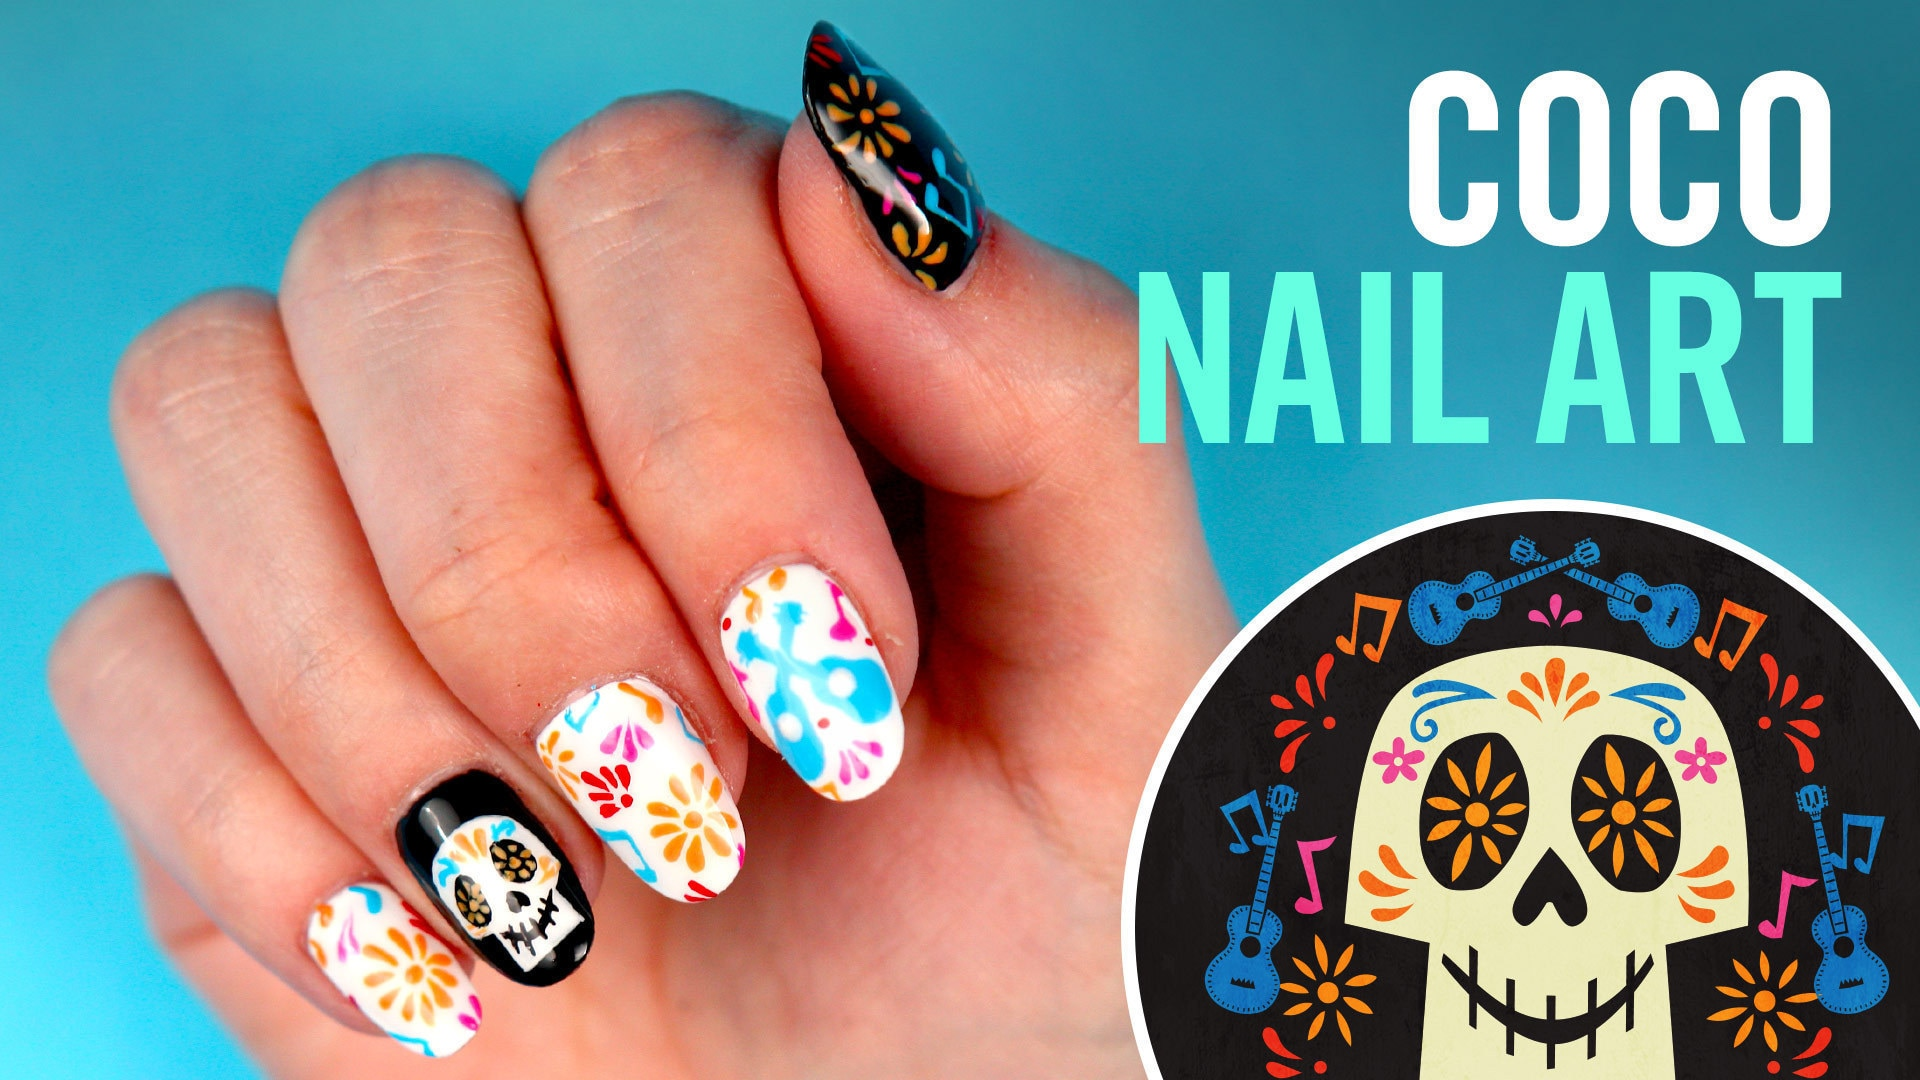 Coco Nail Art | TIPS by Disney Style